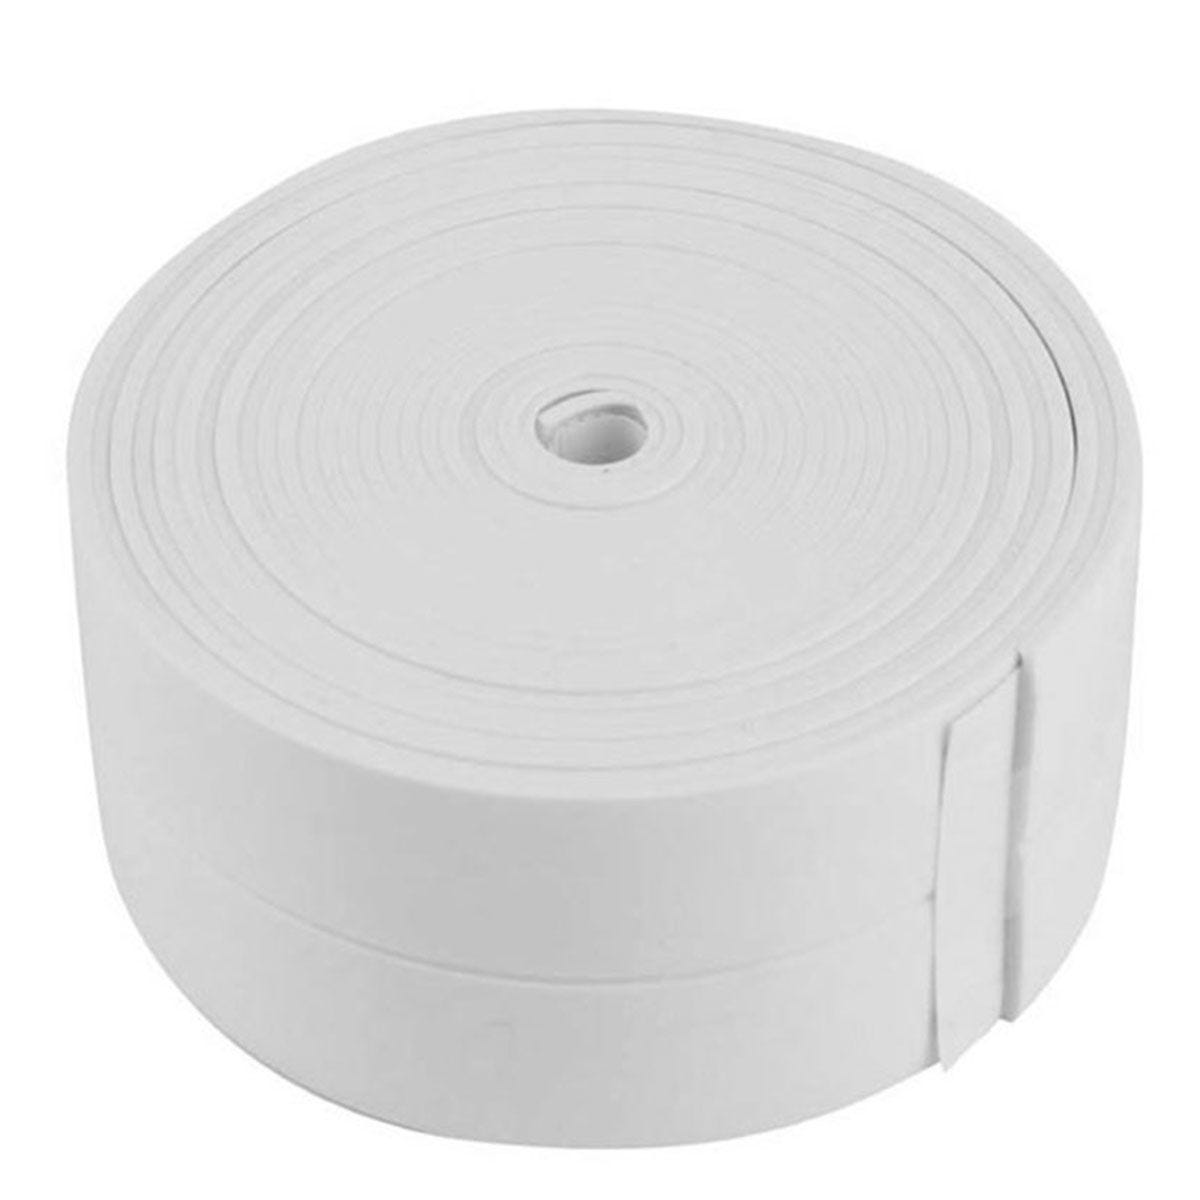 Haven Self Adhesive Anti-moisture PVC Tape for Walls and Sink